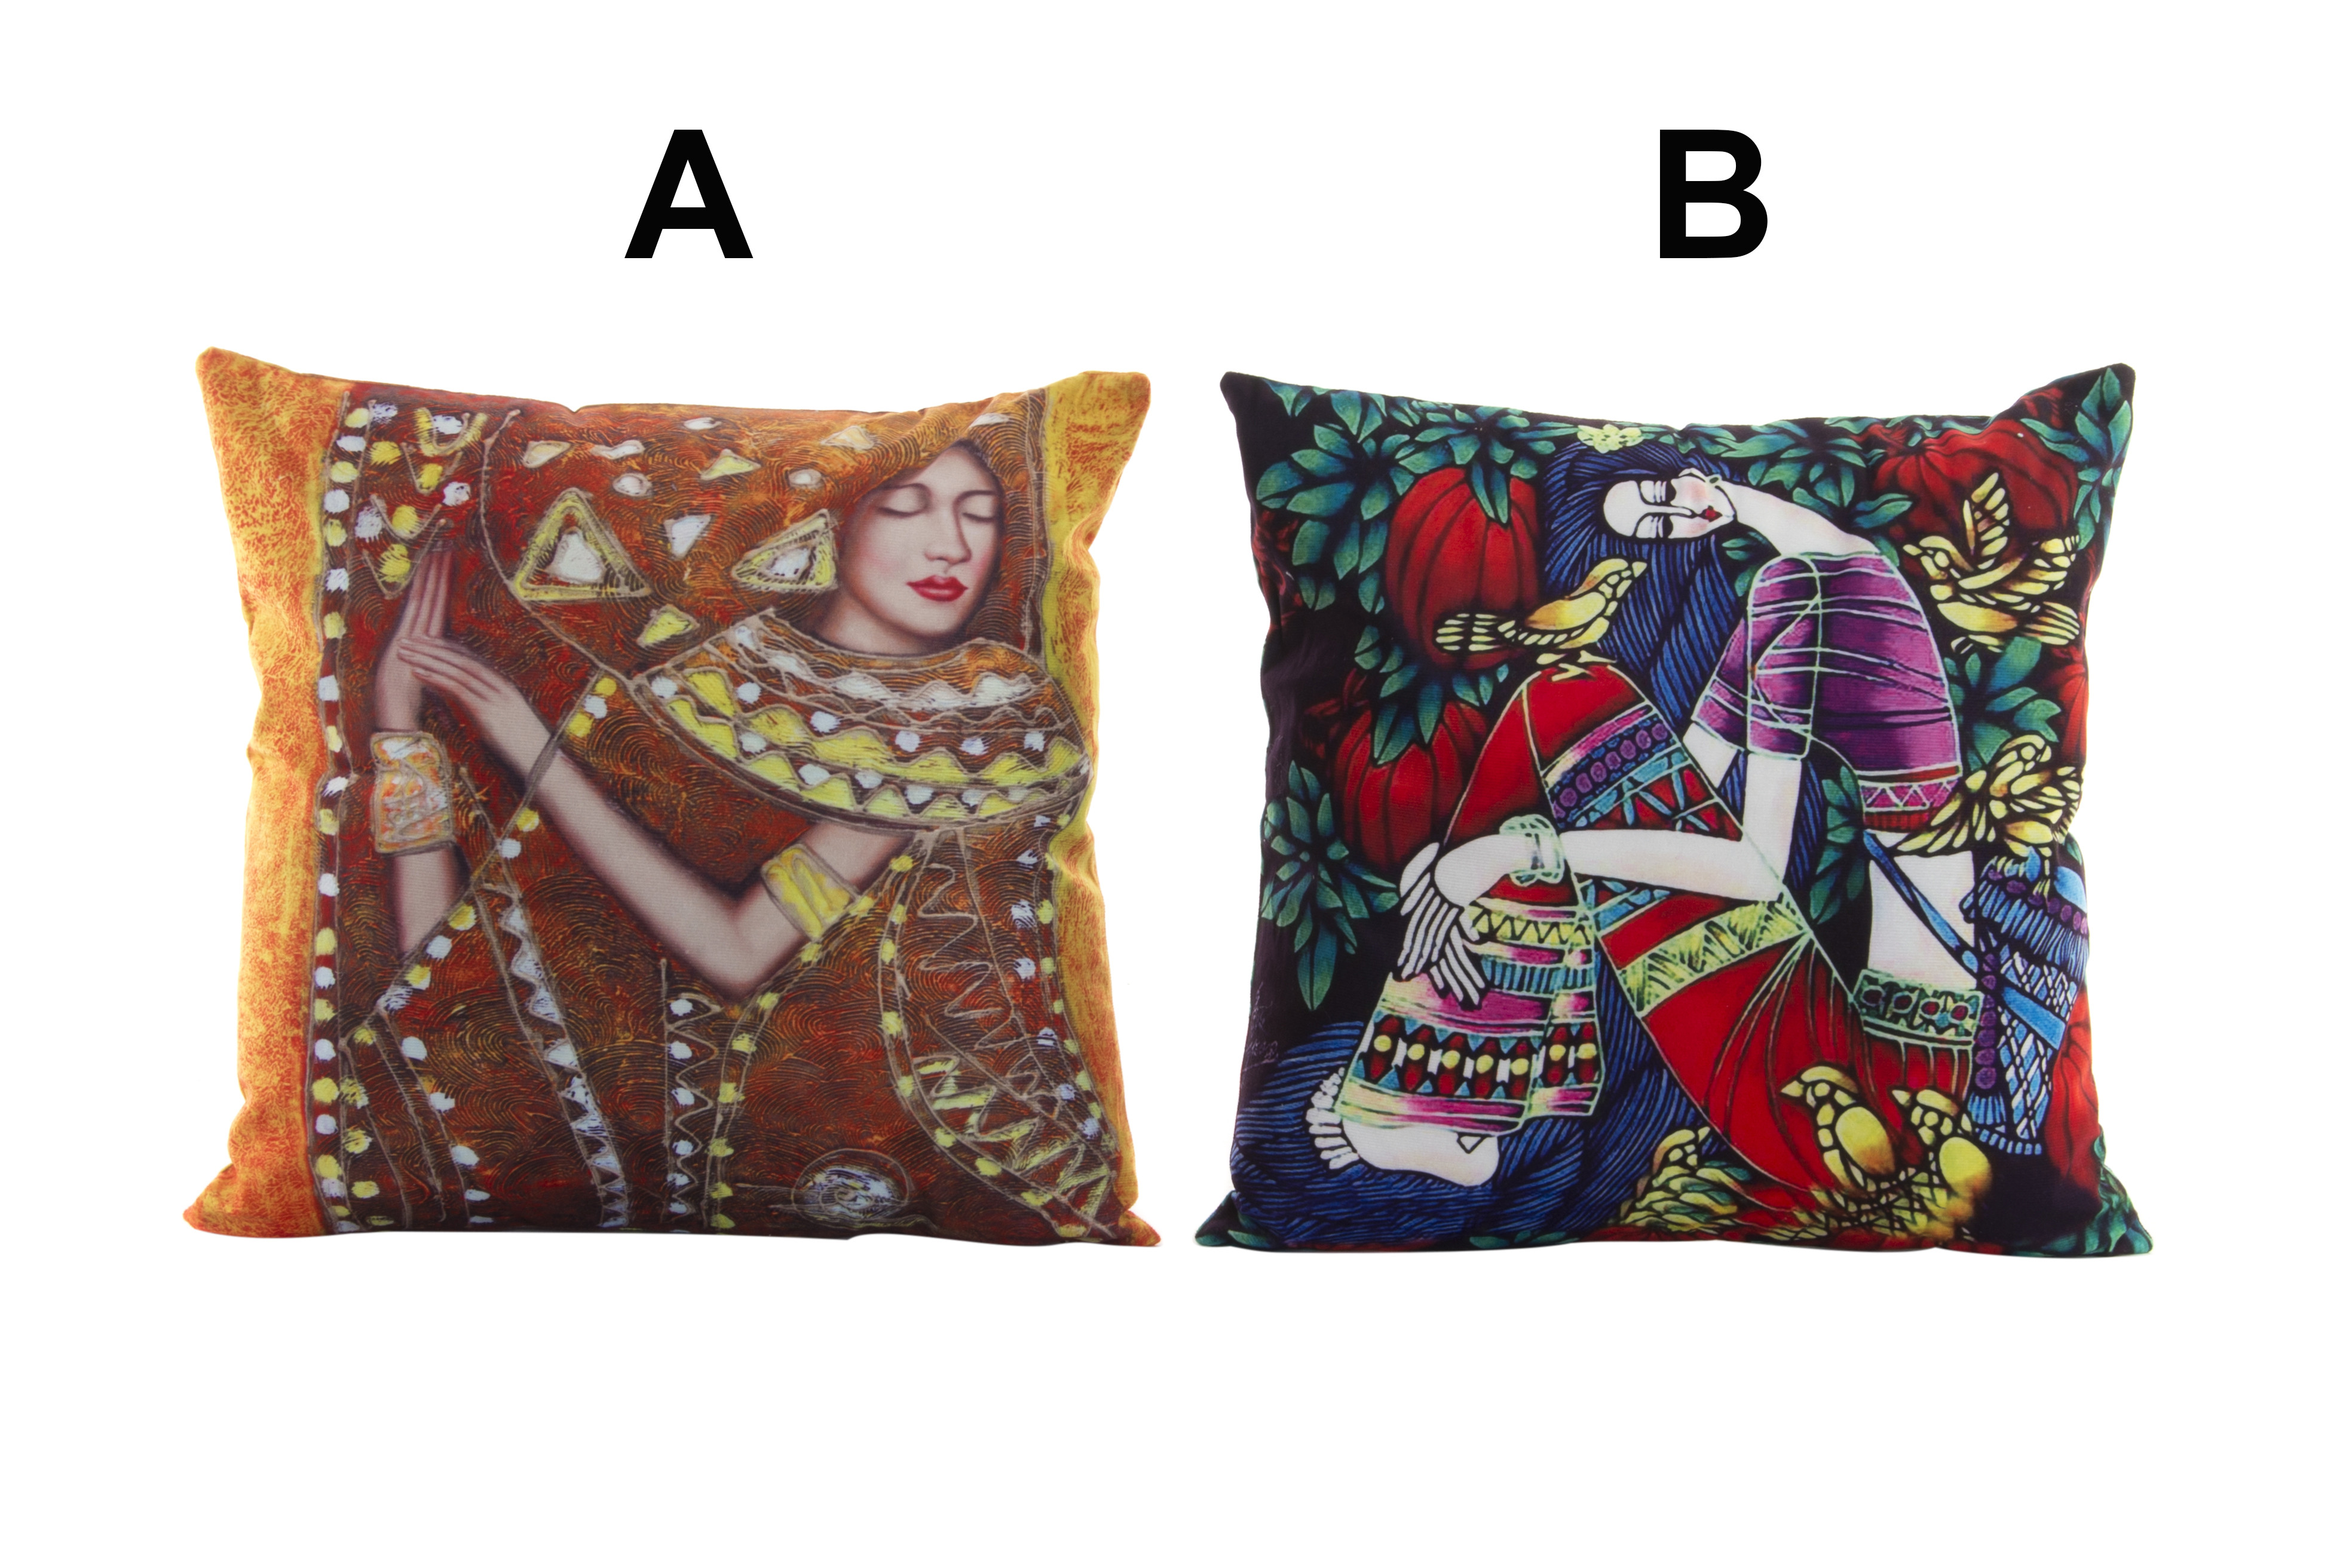 Home and More - comfortable seat Cushion and decorative Ethnic design of vivid colors